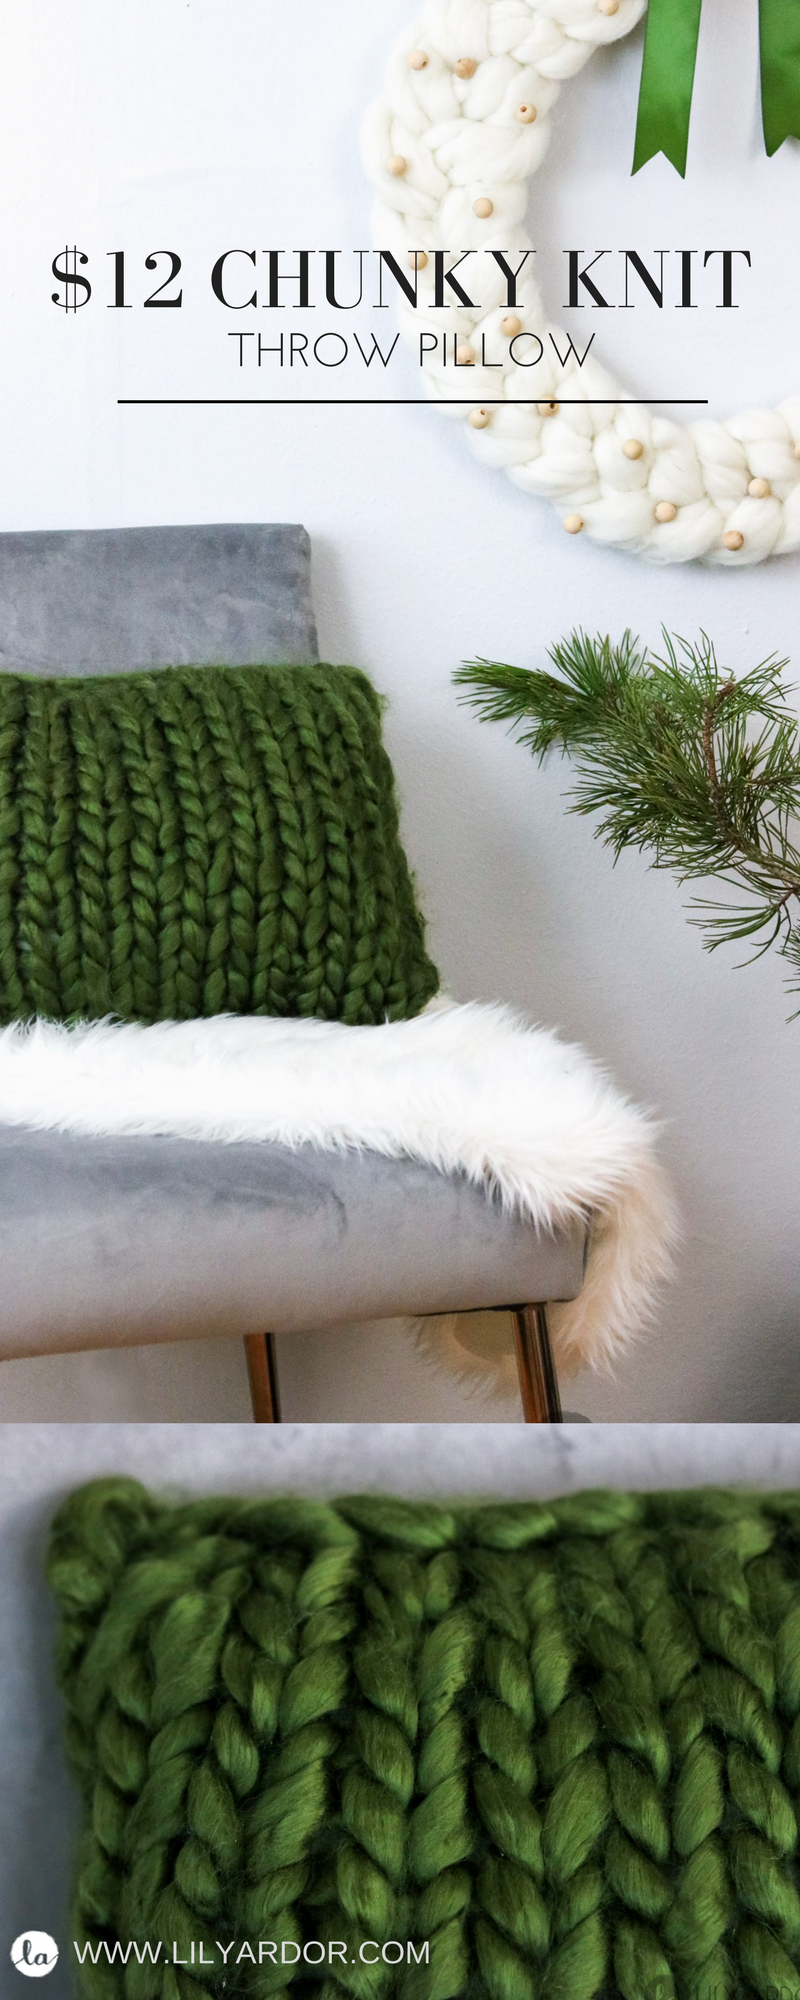 CHUNKY KNIT Throw PILLOW - IN UNDER AN HOUR- Lily Ardor